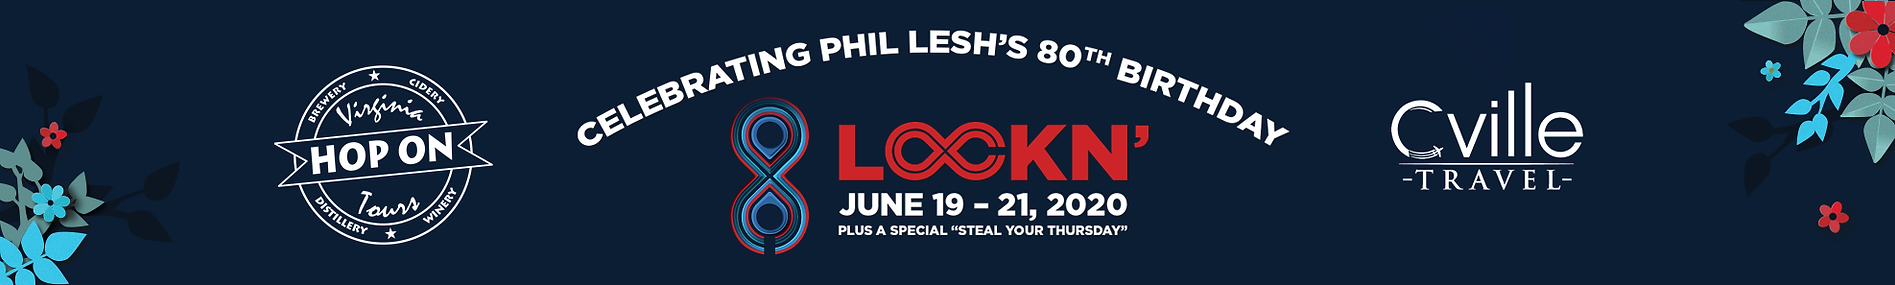 Lockn 2020 website header.png